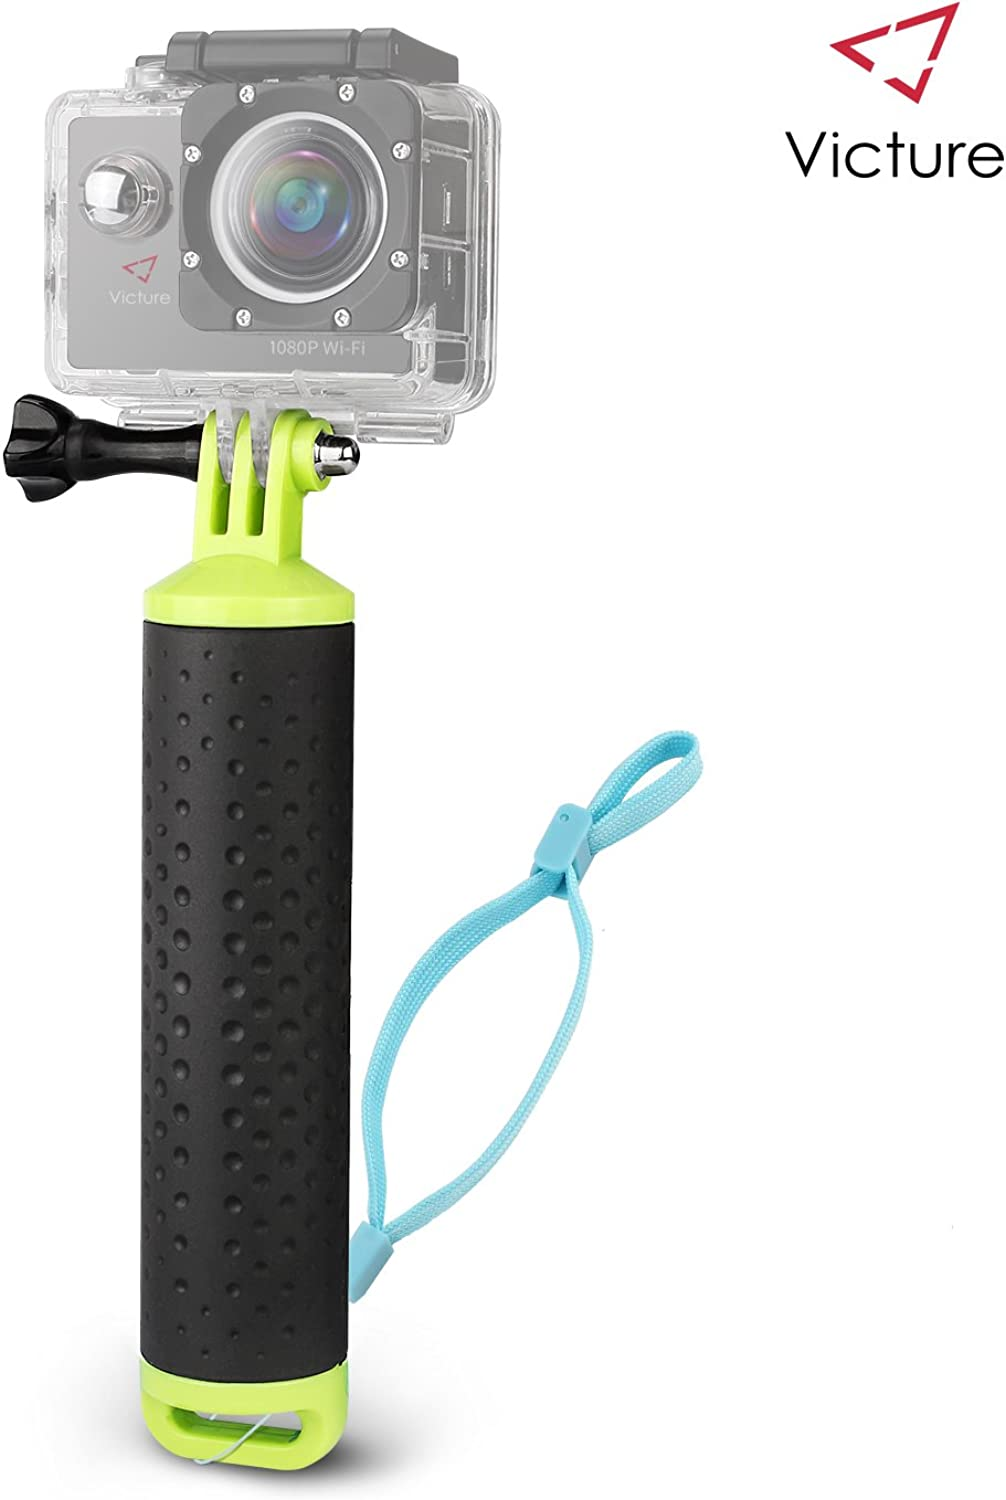 Victure Floating Hand Grip Waterproof Handle Water Sport Pole Diving Stick Monopod for APEMAN AKASO Action Cameras